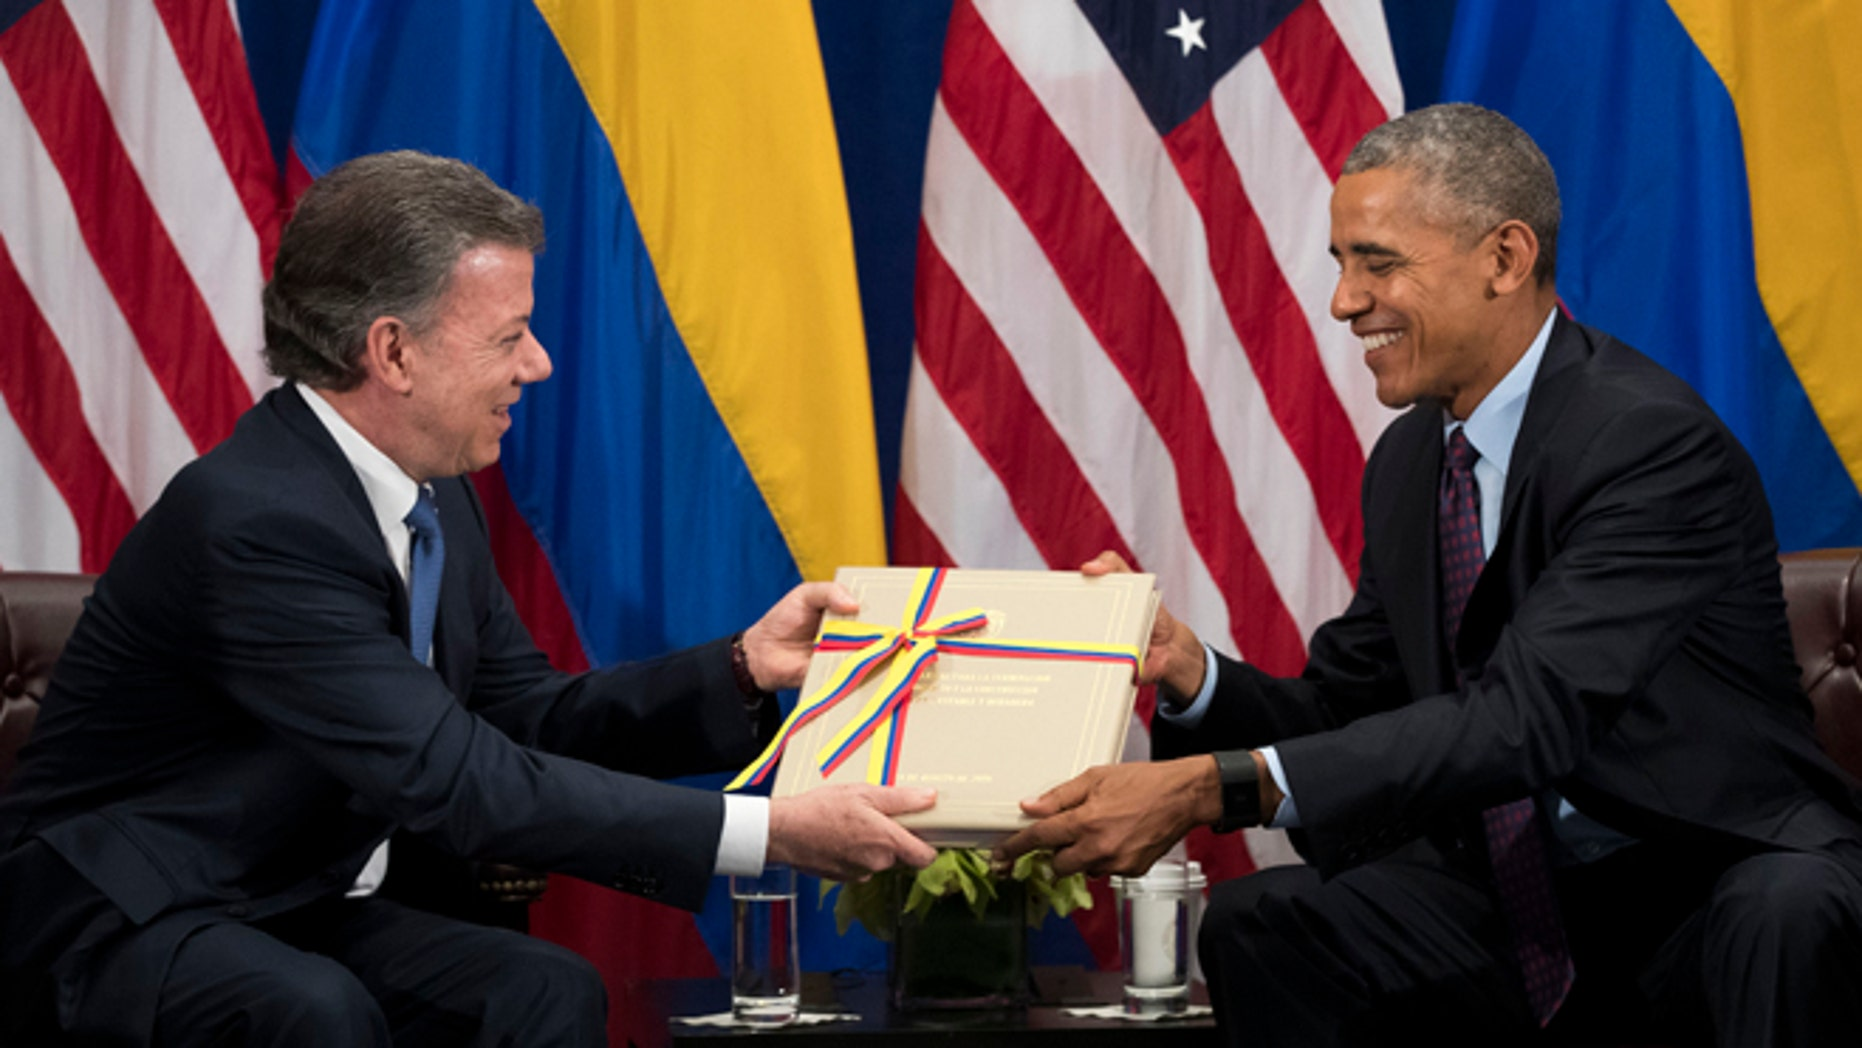 NEW YORK, NEW YORK - SEPTEMBER 21: (L to R) President of Colombia Juan Manuel Santos gives U.S. President Barack Obama a copy of the Colombian peace agreement during bilateral meeting at the Lotte New York Palace Hotel, September 21, 2016 in New York City. In Tuesday's speech to the United Nations General Assembly, Obama stated that 'helping Colombia end Latin America's longest war' was among his major accomplishments as president. Last month, the Colombian government reached a peace agreement with the Revolutionary Armed Forces of Colombia (FARC). (Photo by Drew Angerer/Getty Images)